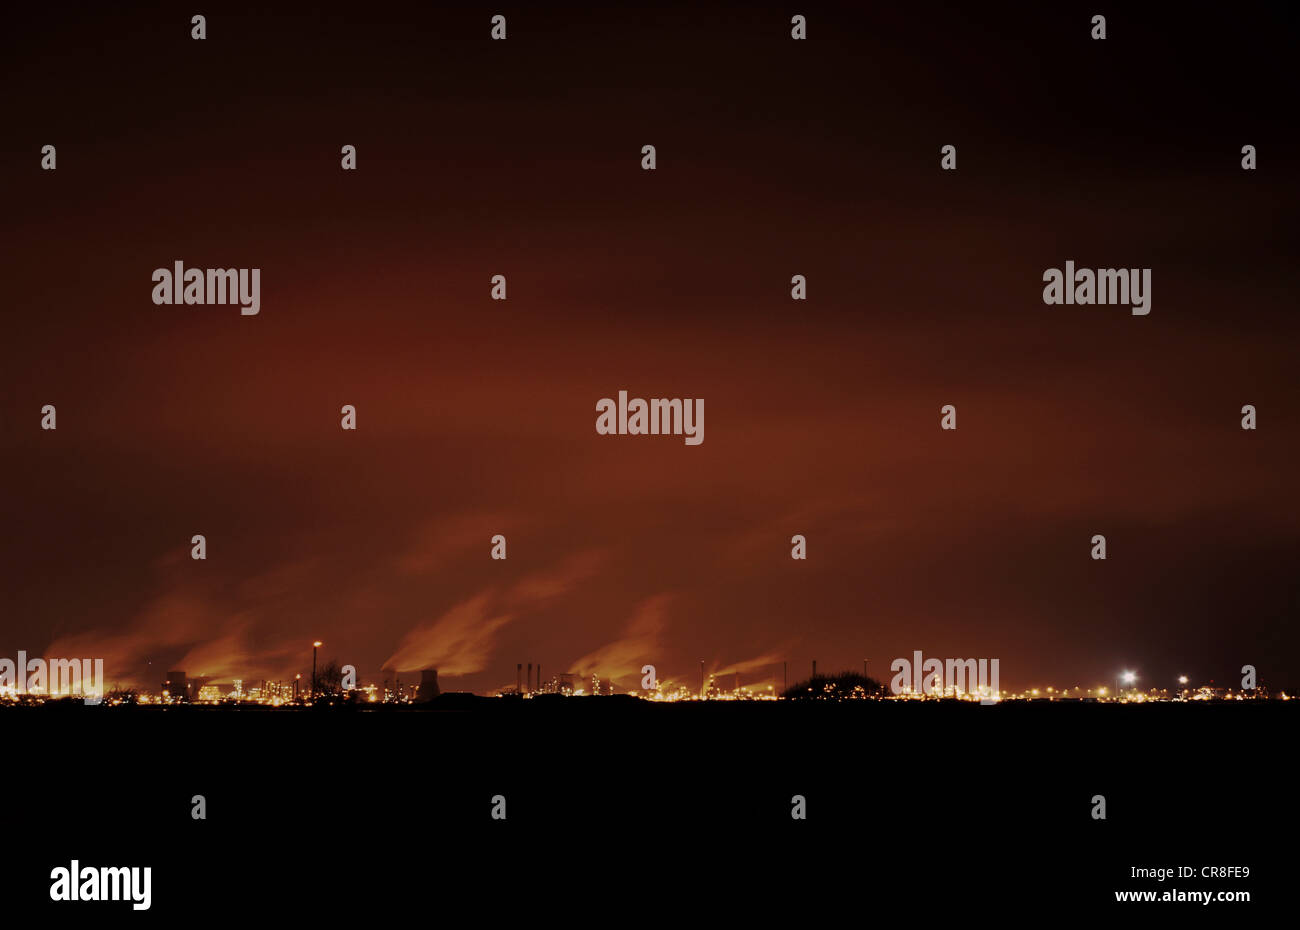 Grangemouth oil refinery at night, Scotland - Stock Image